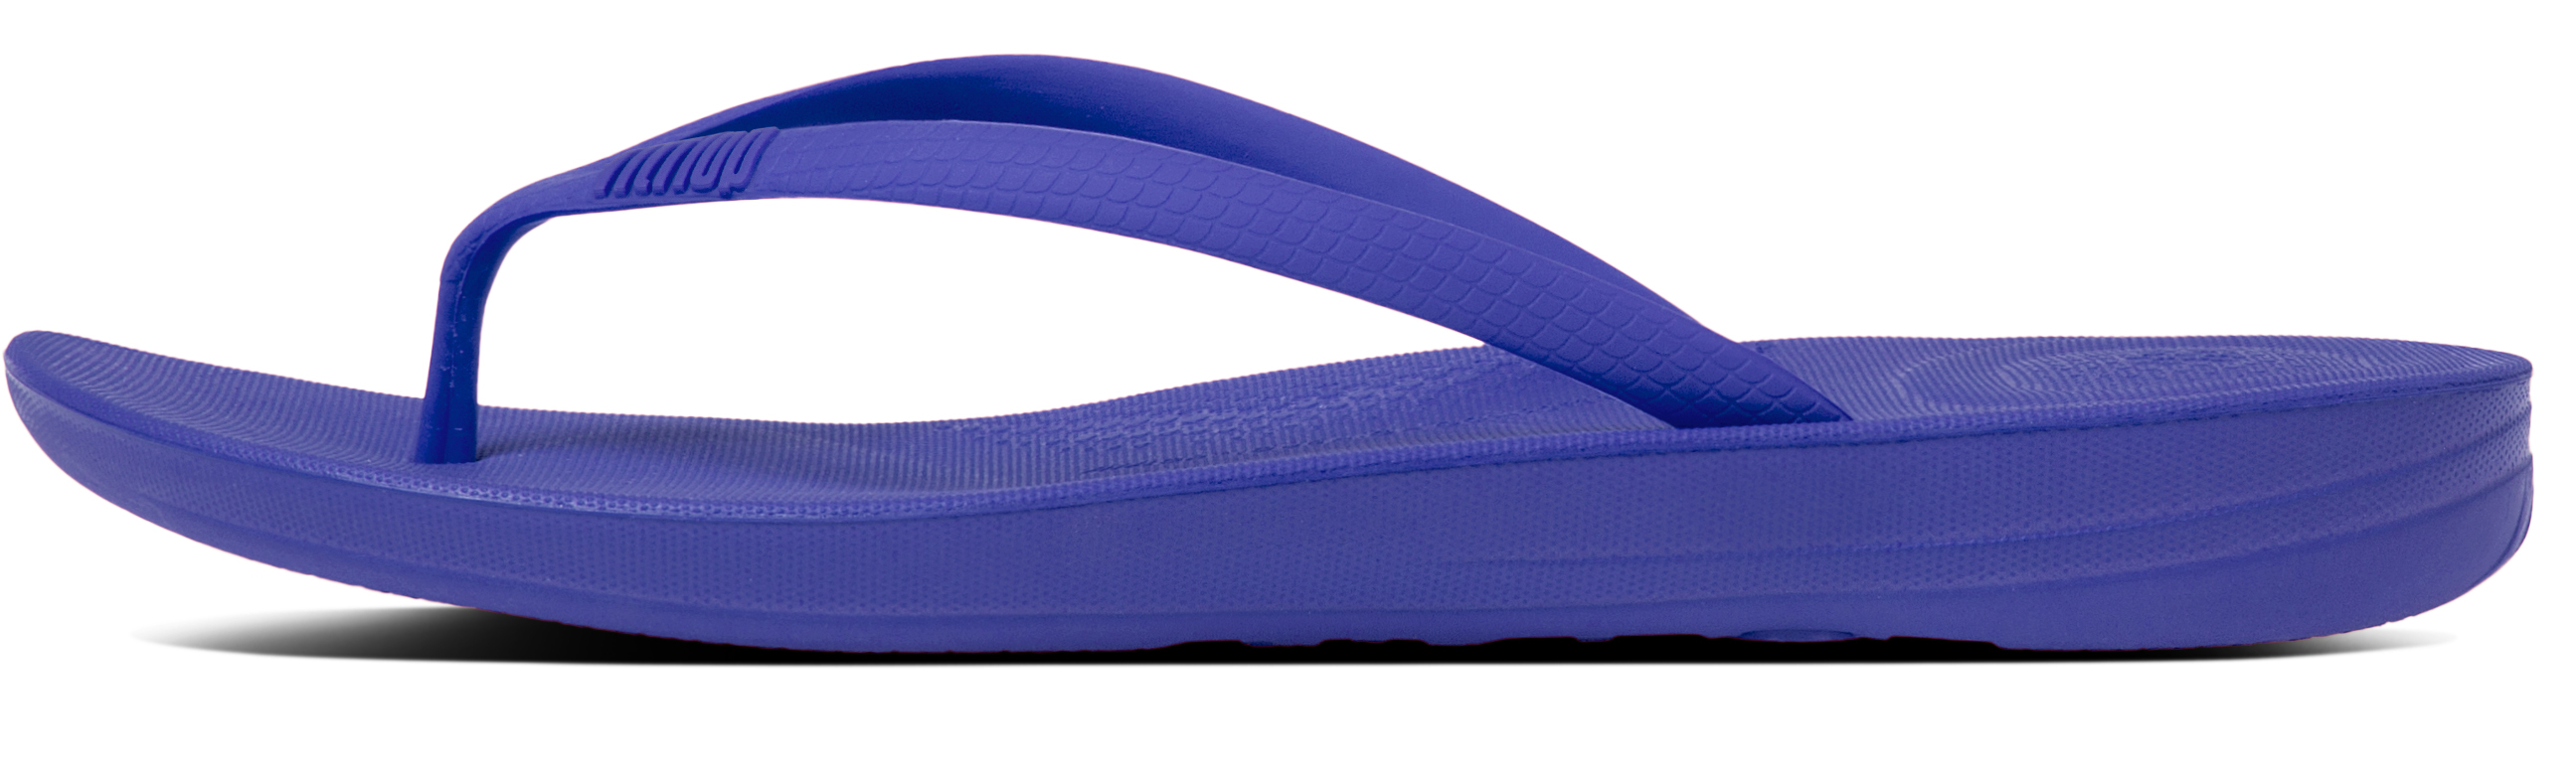 ddd94c10f2917 FitFlop Iqushion E54-043 Royal Blue Super-ergonomic Flip Flops Uk7. About  this product. Picture 1 of 4  Picture 2 of 4  Picture 3 of 4 ...